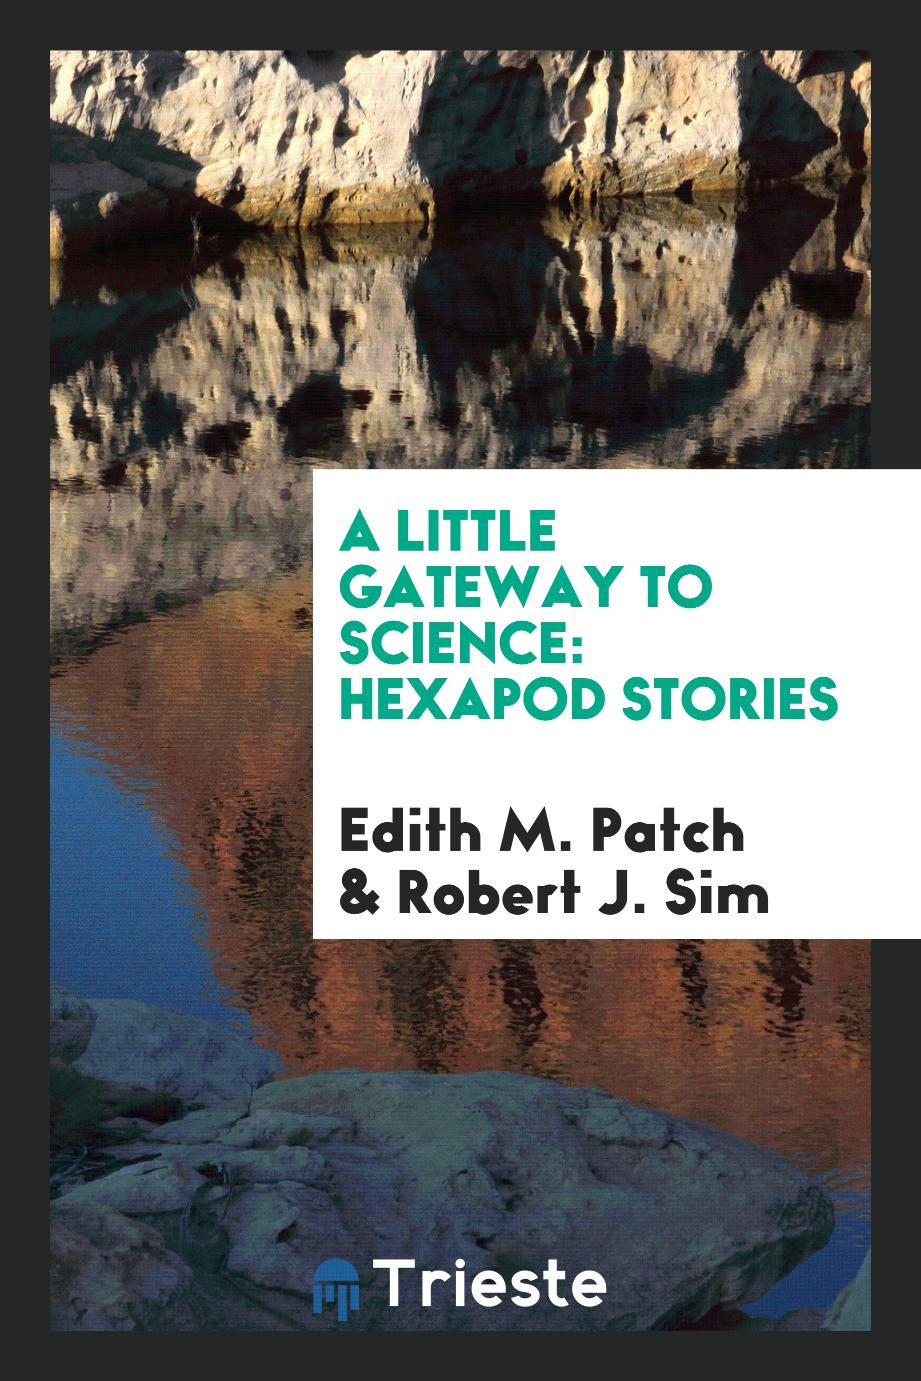 A Little Gateway to Science: Hexapod Stories